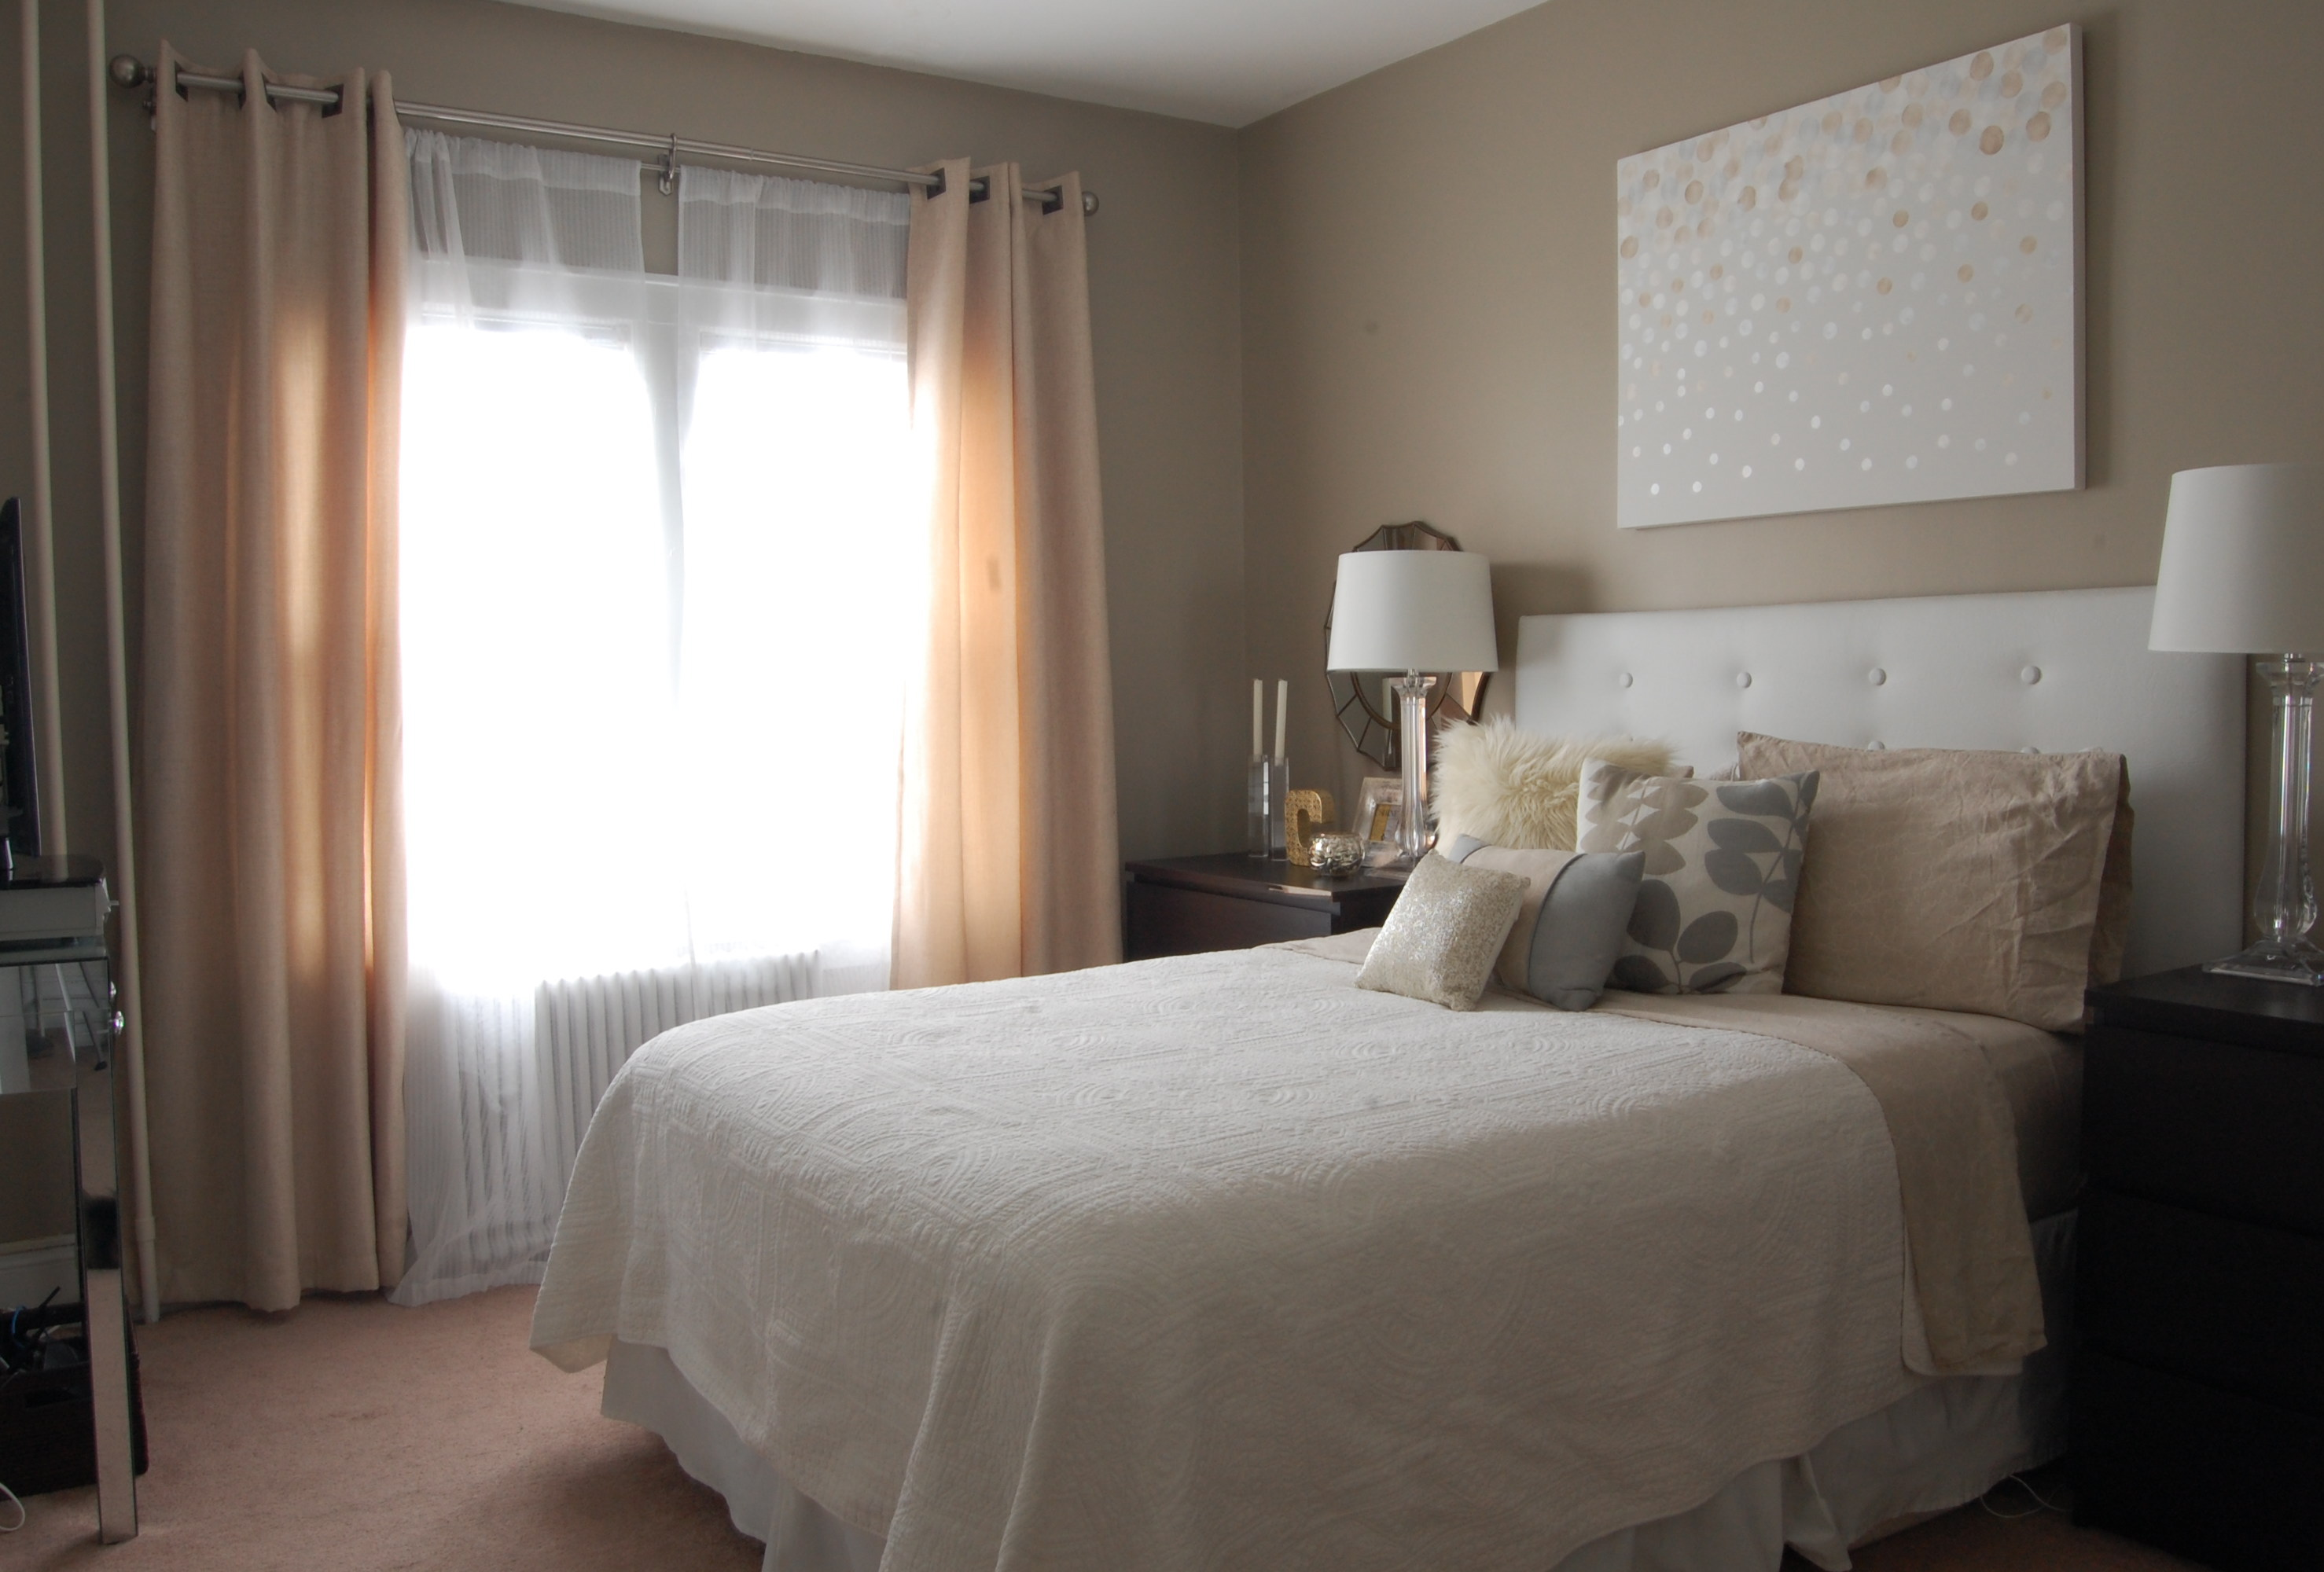 Mirror Placement In Bedroom Bedroom Makeover Reveal Made2style